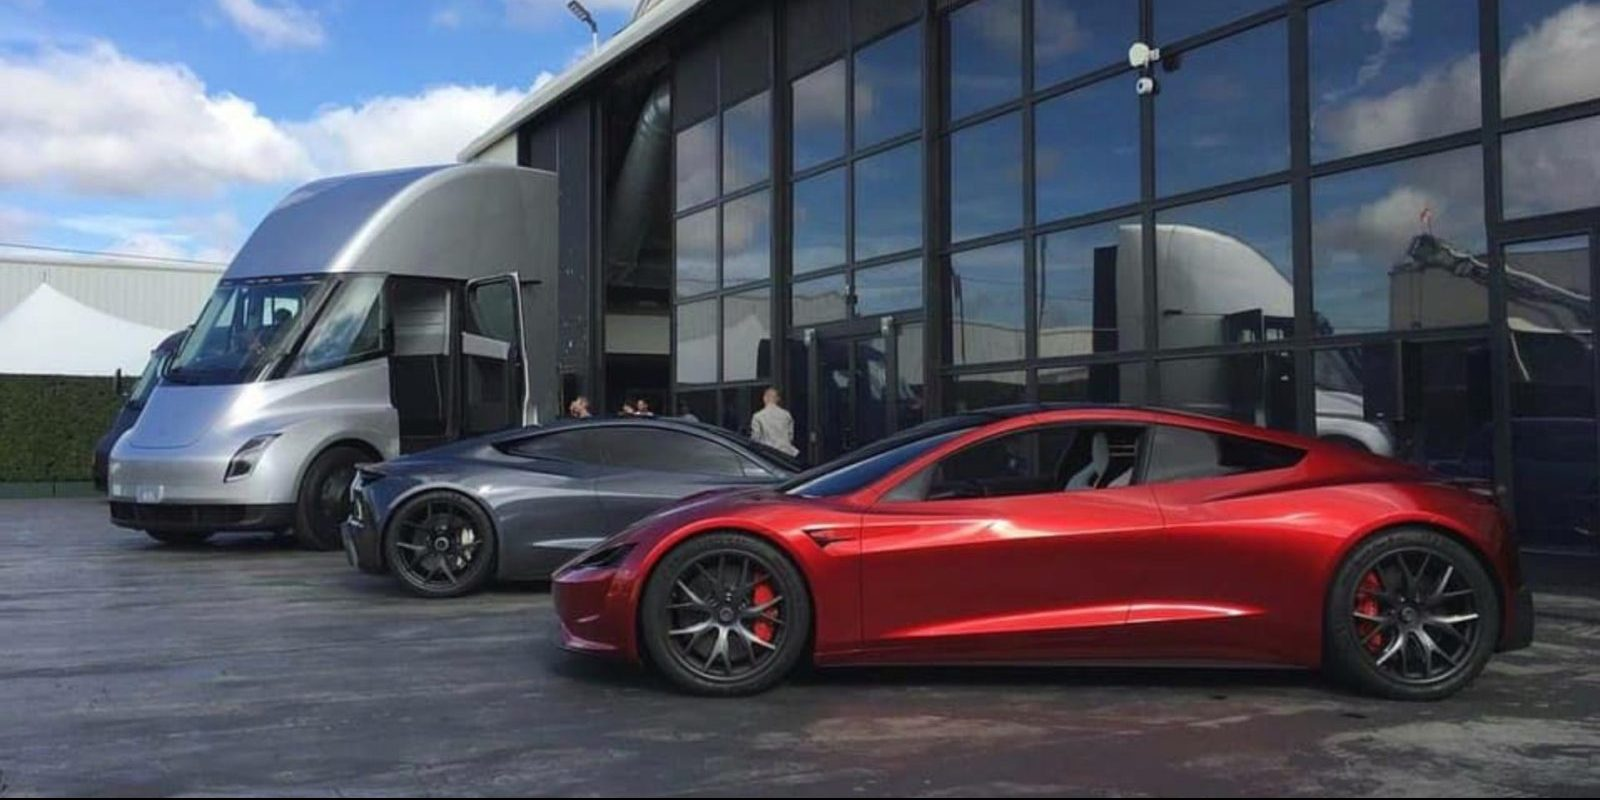 Elon Musk confirms Tesla 'high volume' battery cell production won't start until 2022, will affect Cybertruck, Semi, and Roadster